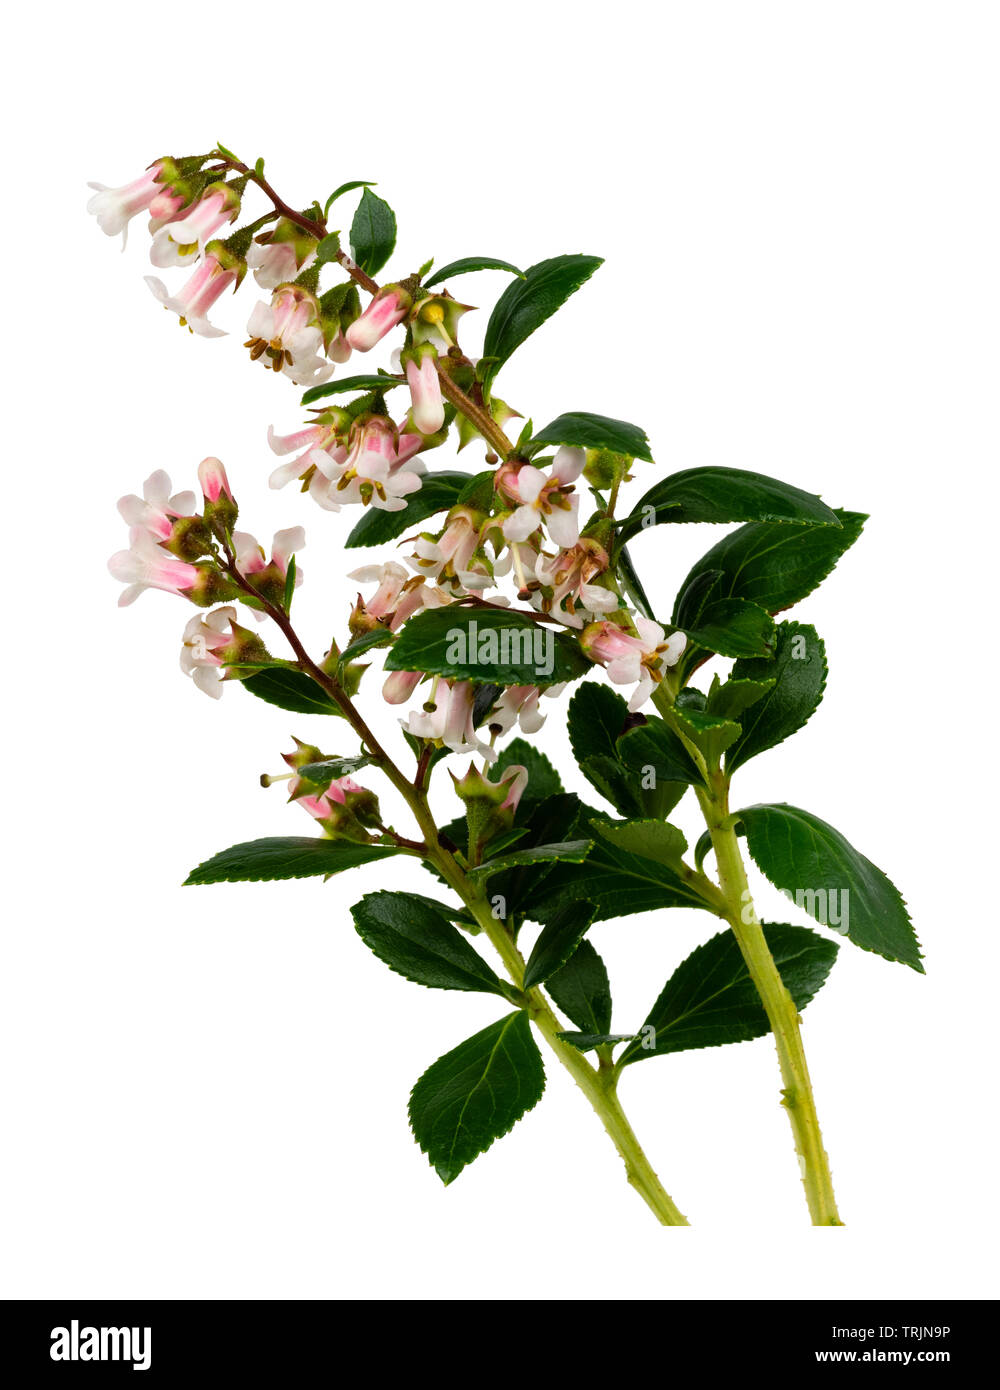 Summer panicles of the pale pink and white flowered evergreen hedging shrub, Escallonia 'Apple Blossom' on a white background - Stock Image